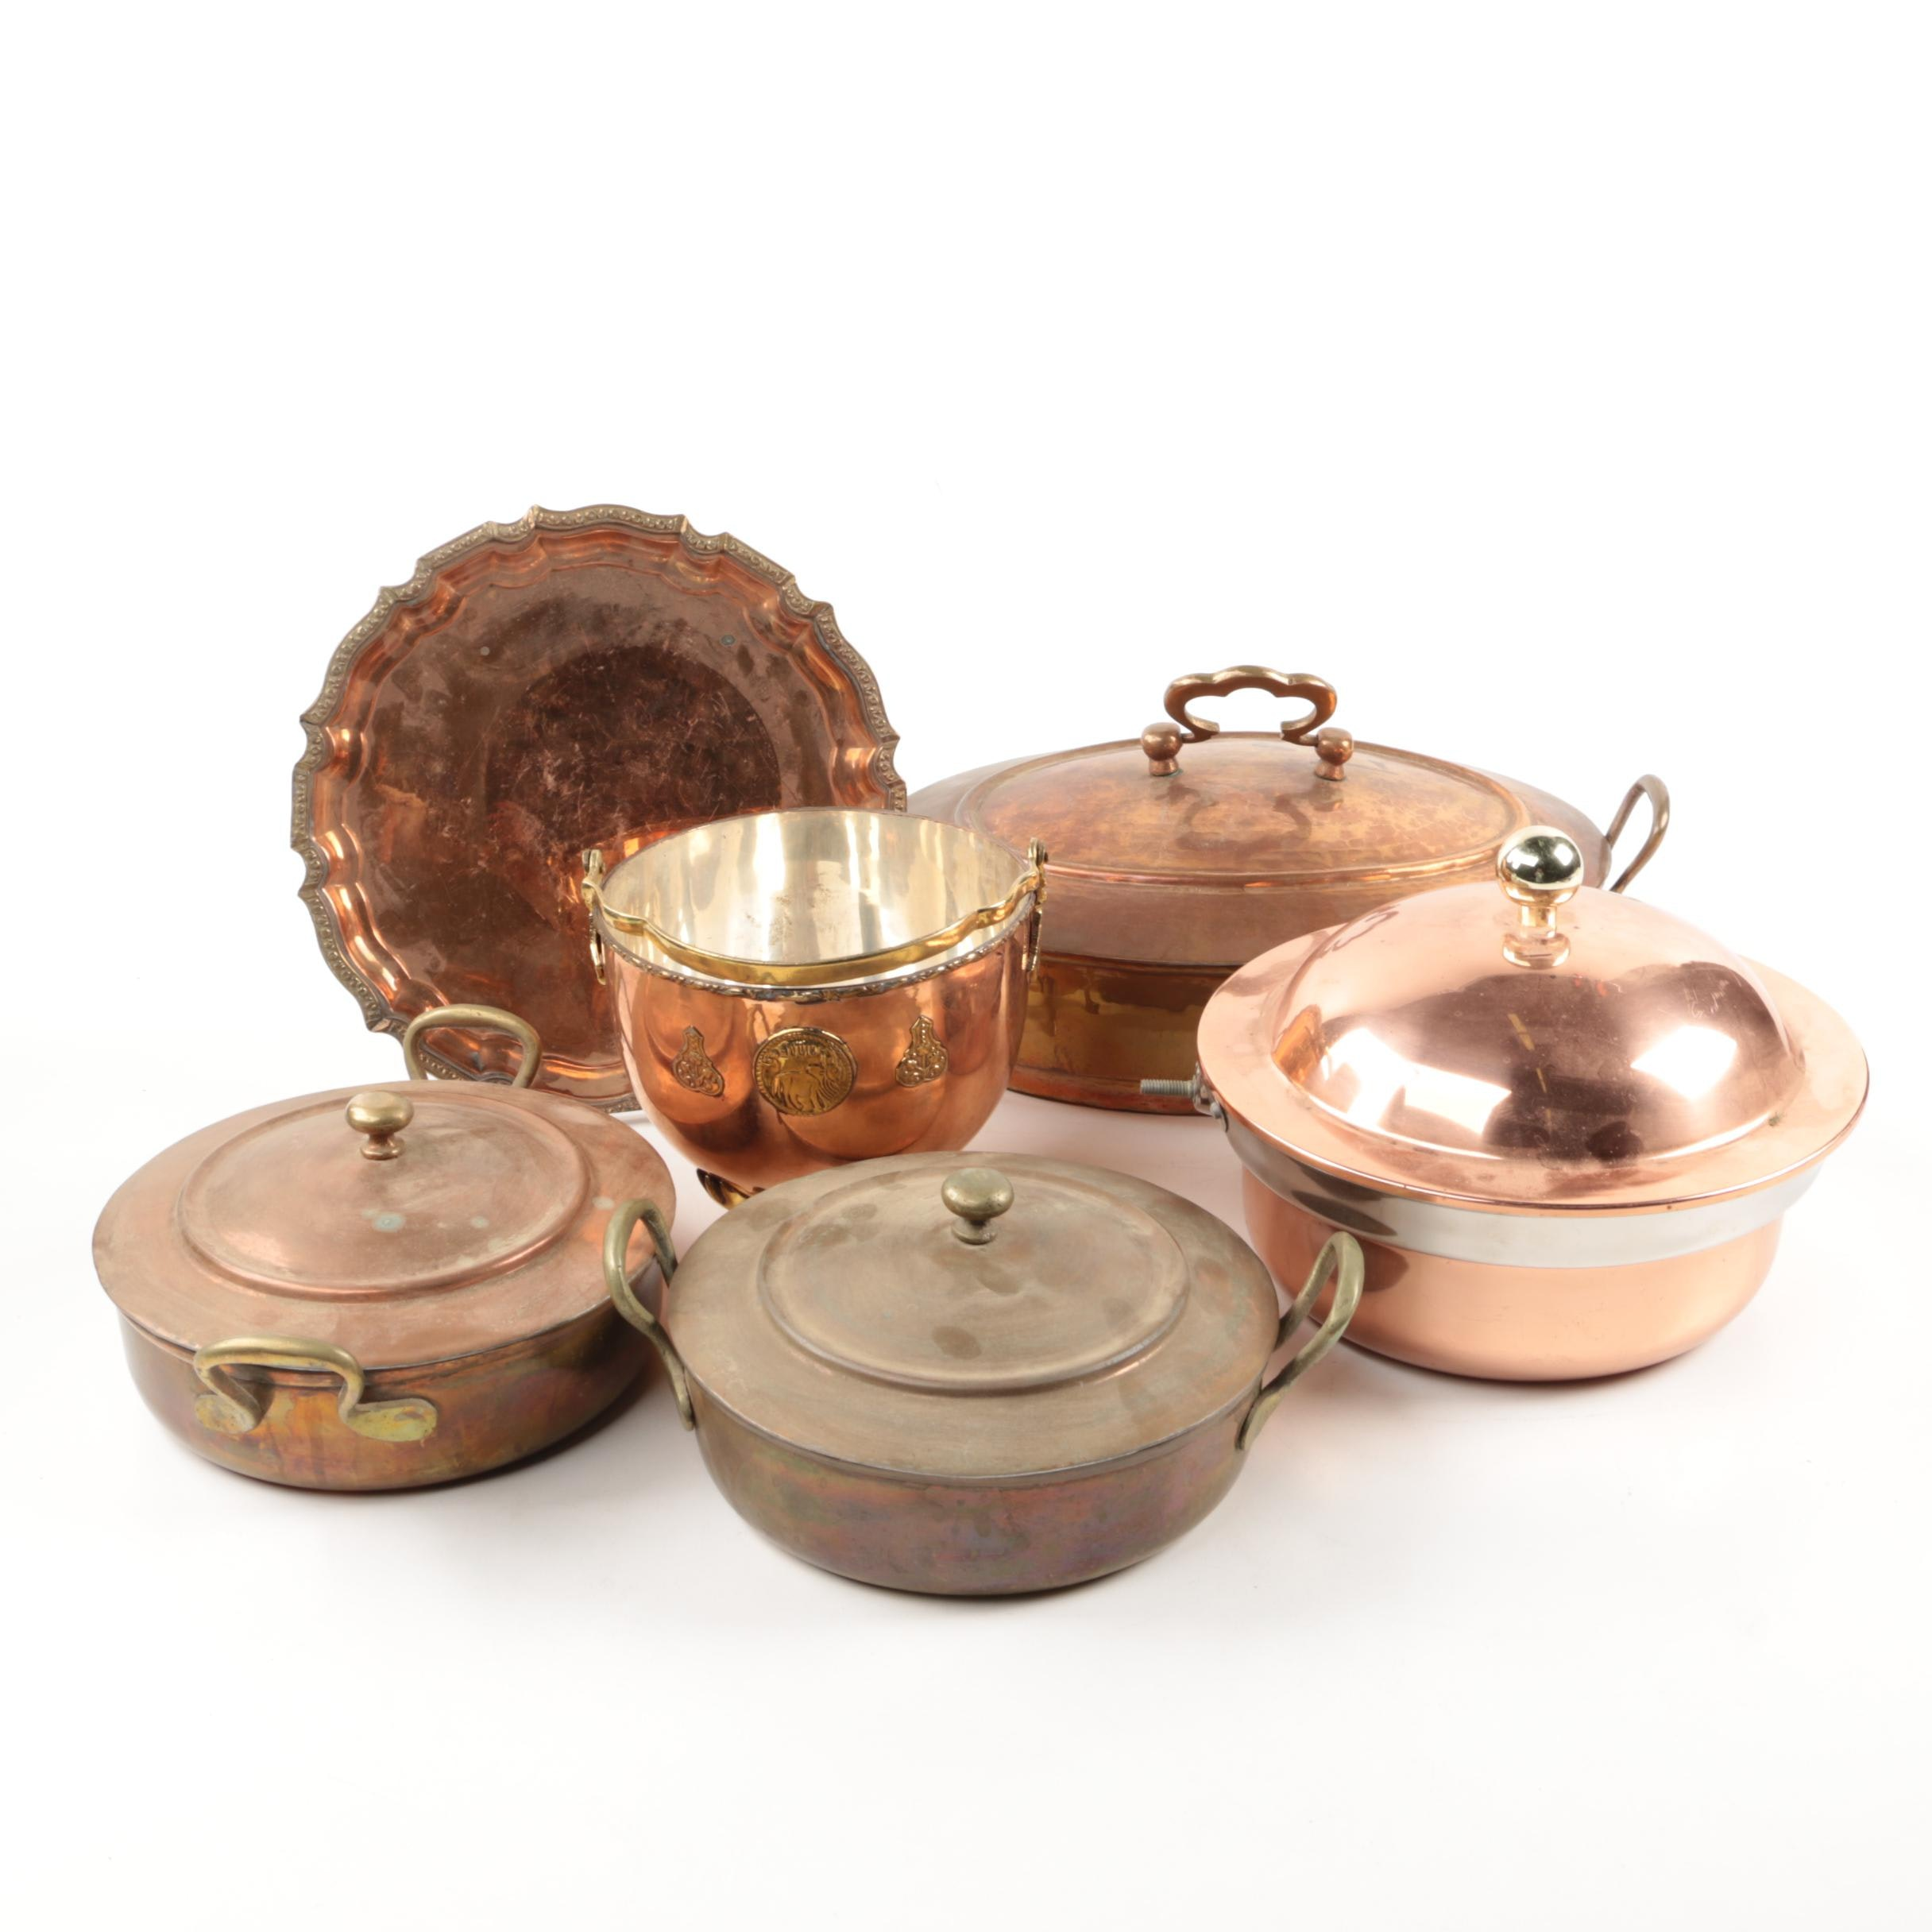 Vintage Copper and Brass Cookware from Pakistan